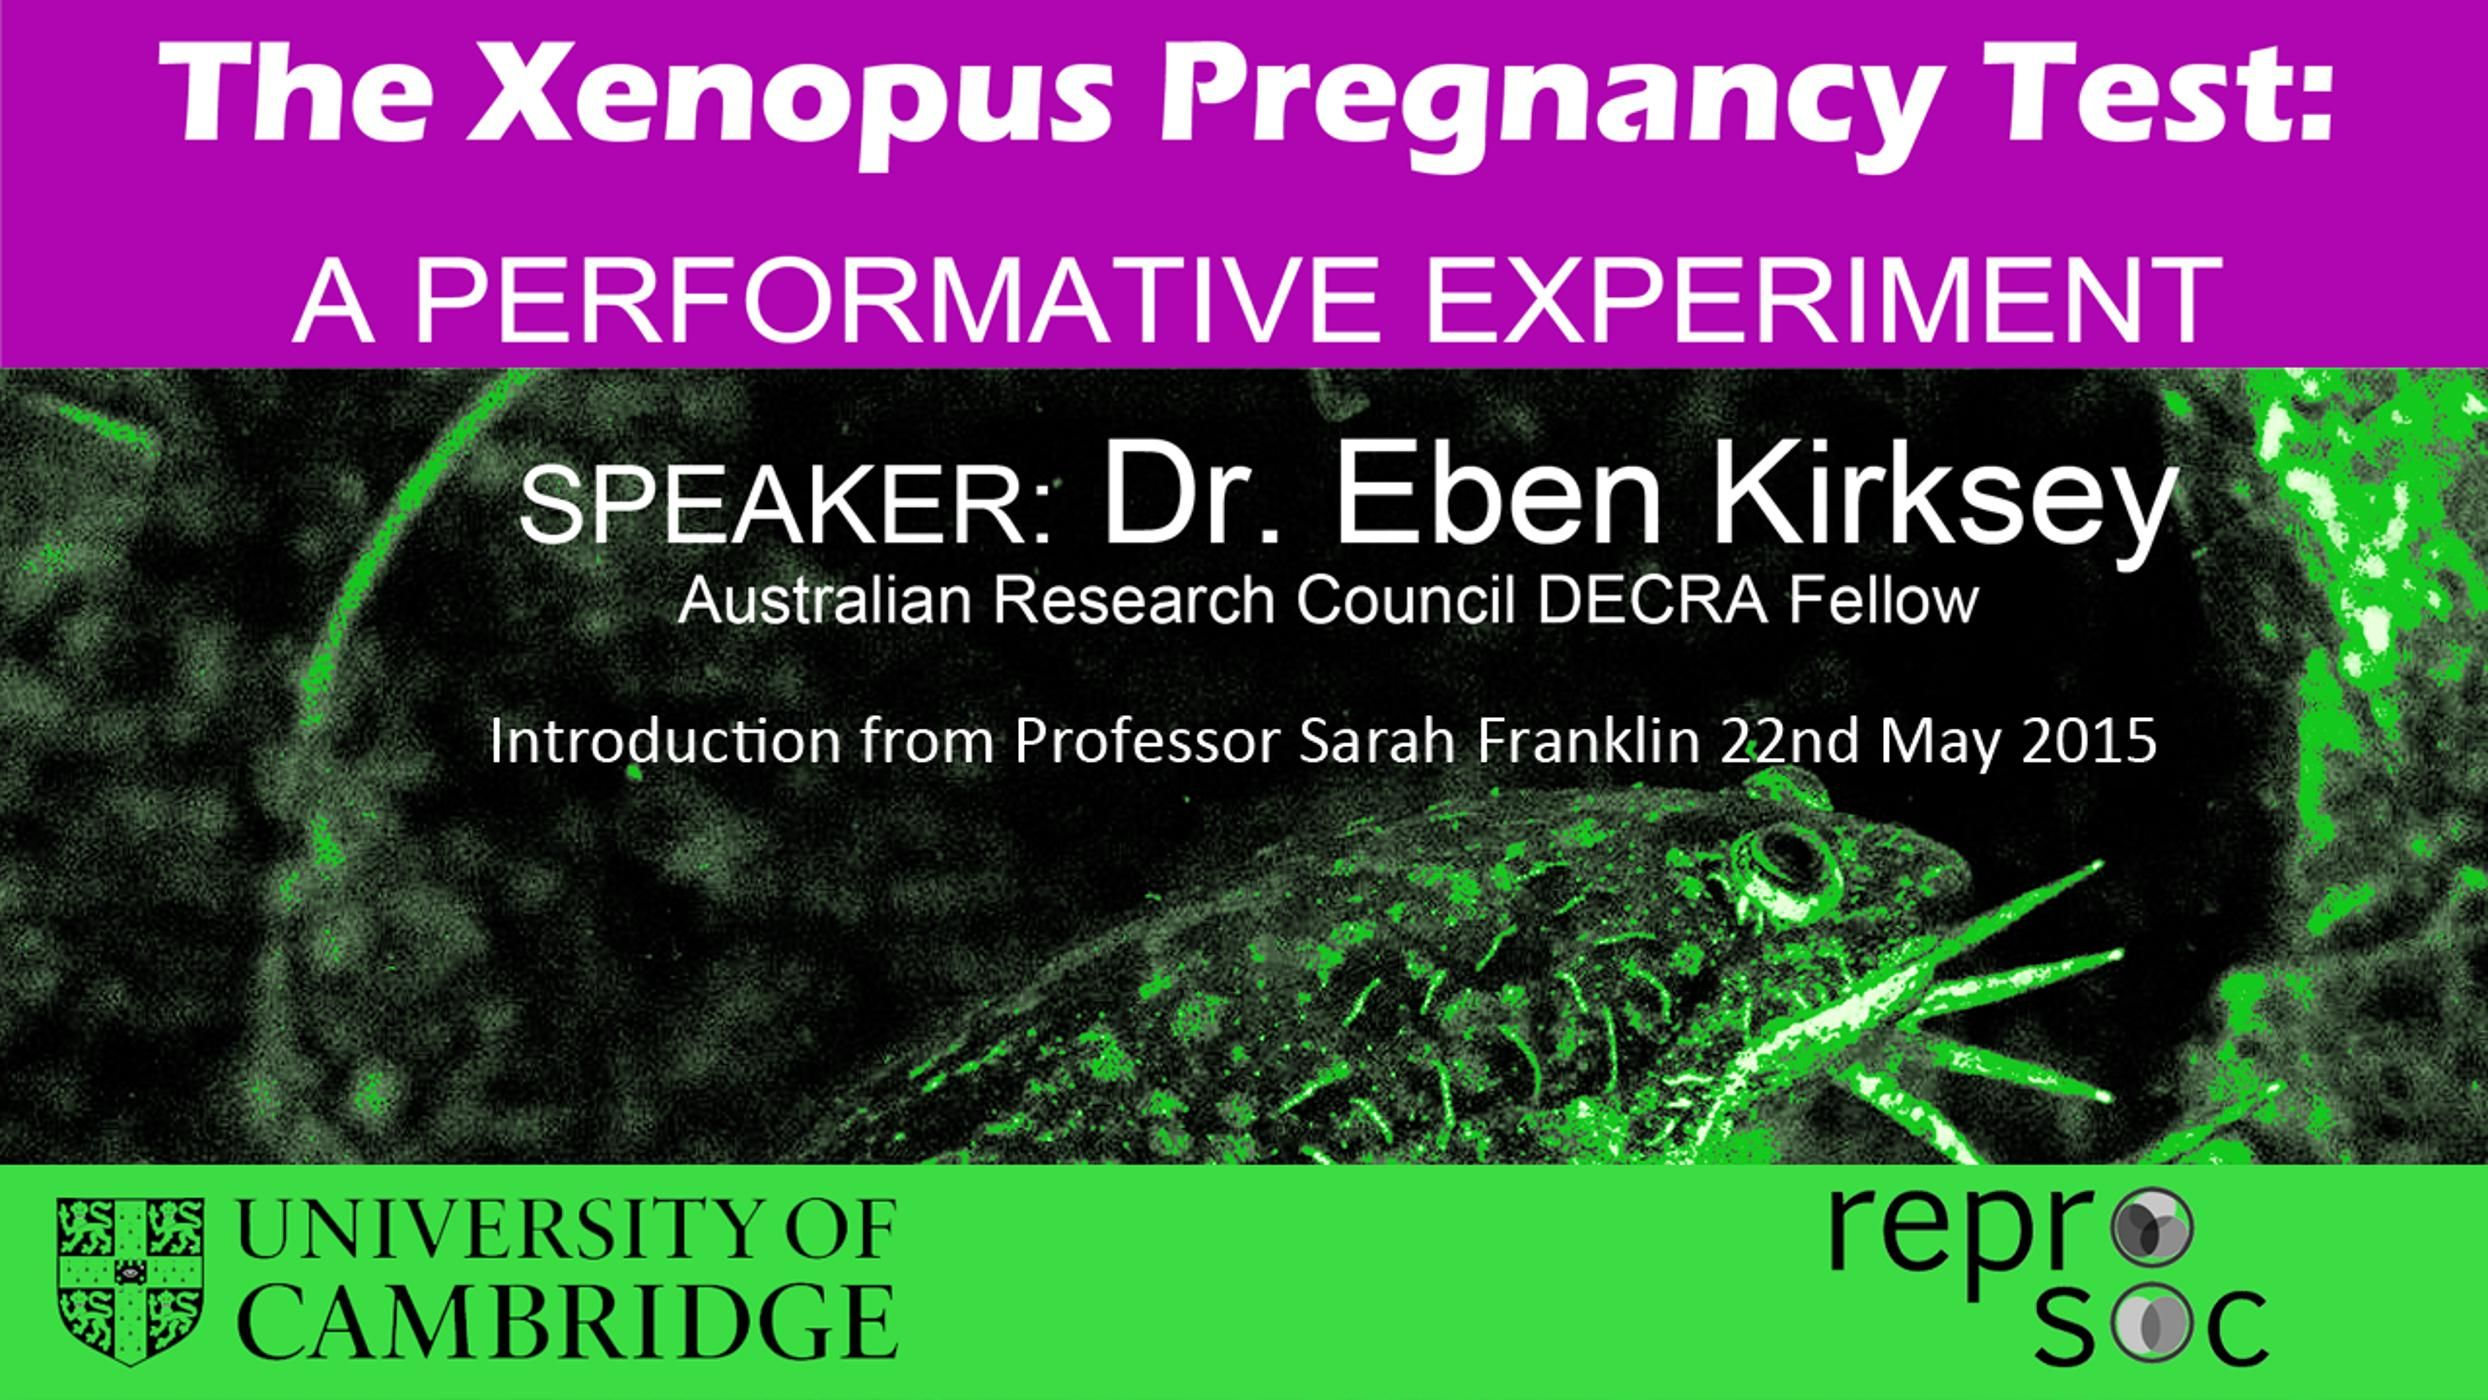 Guest Speaker Dr. Eben Kirksey - The Xenopus Pregnancy Test: A Performative Experiment